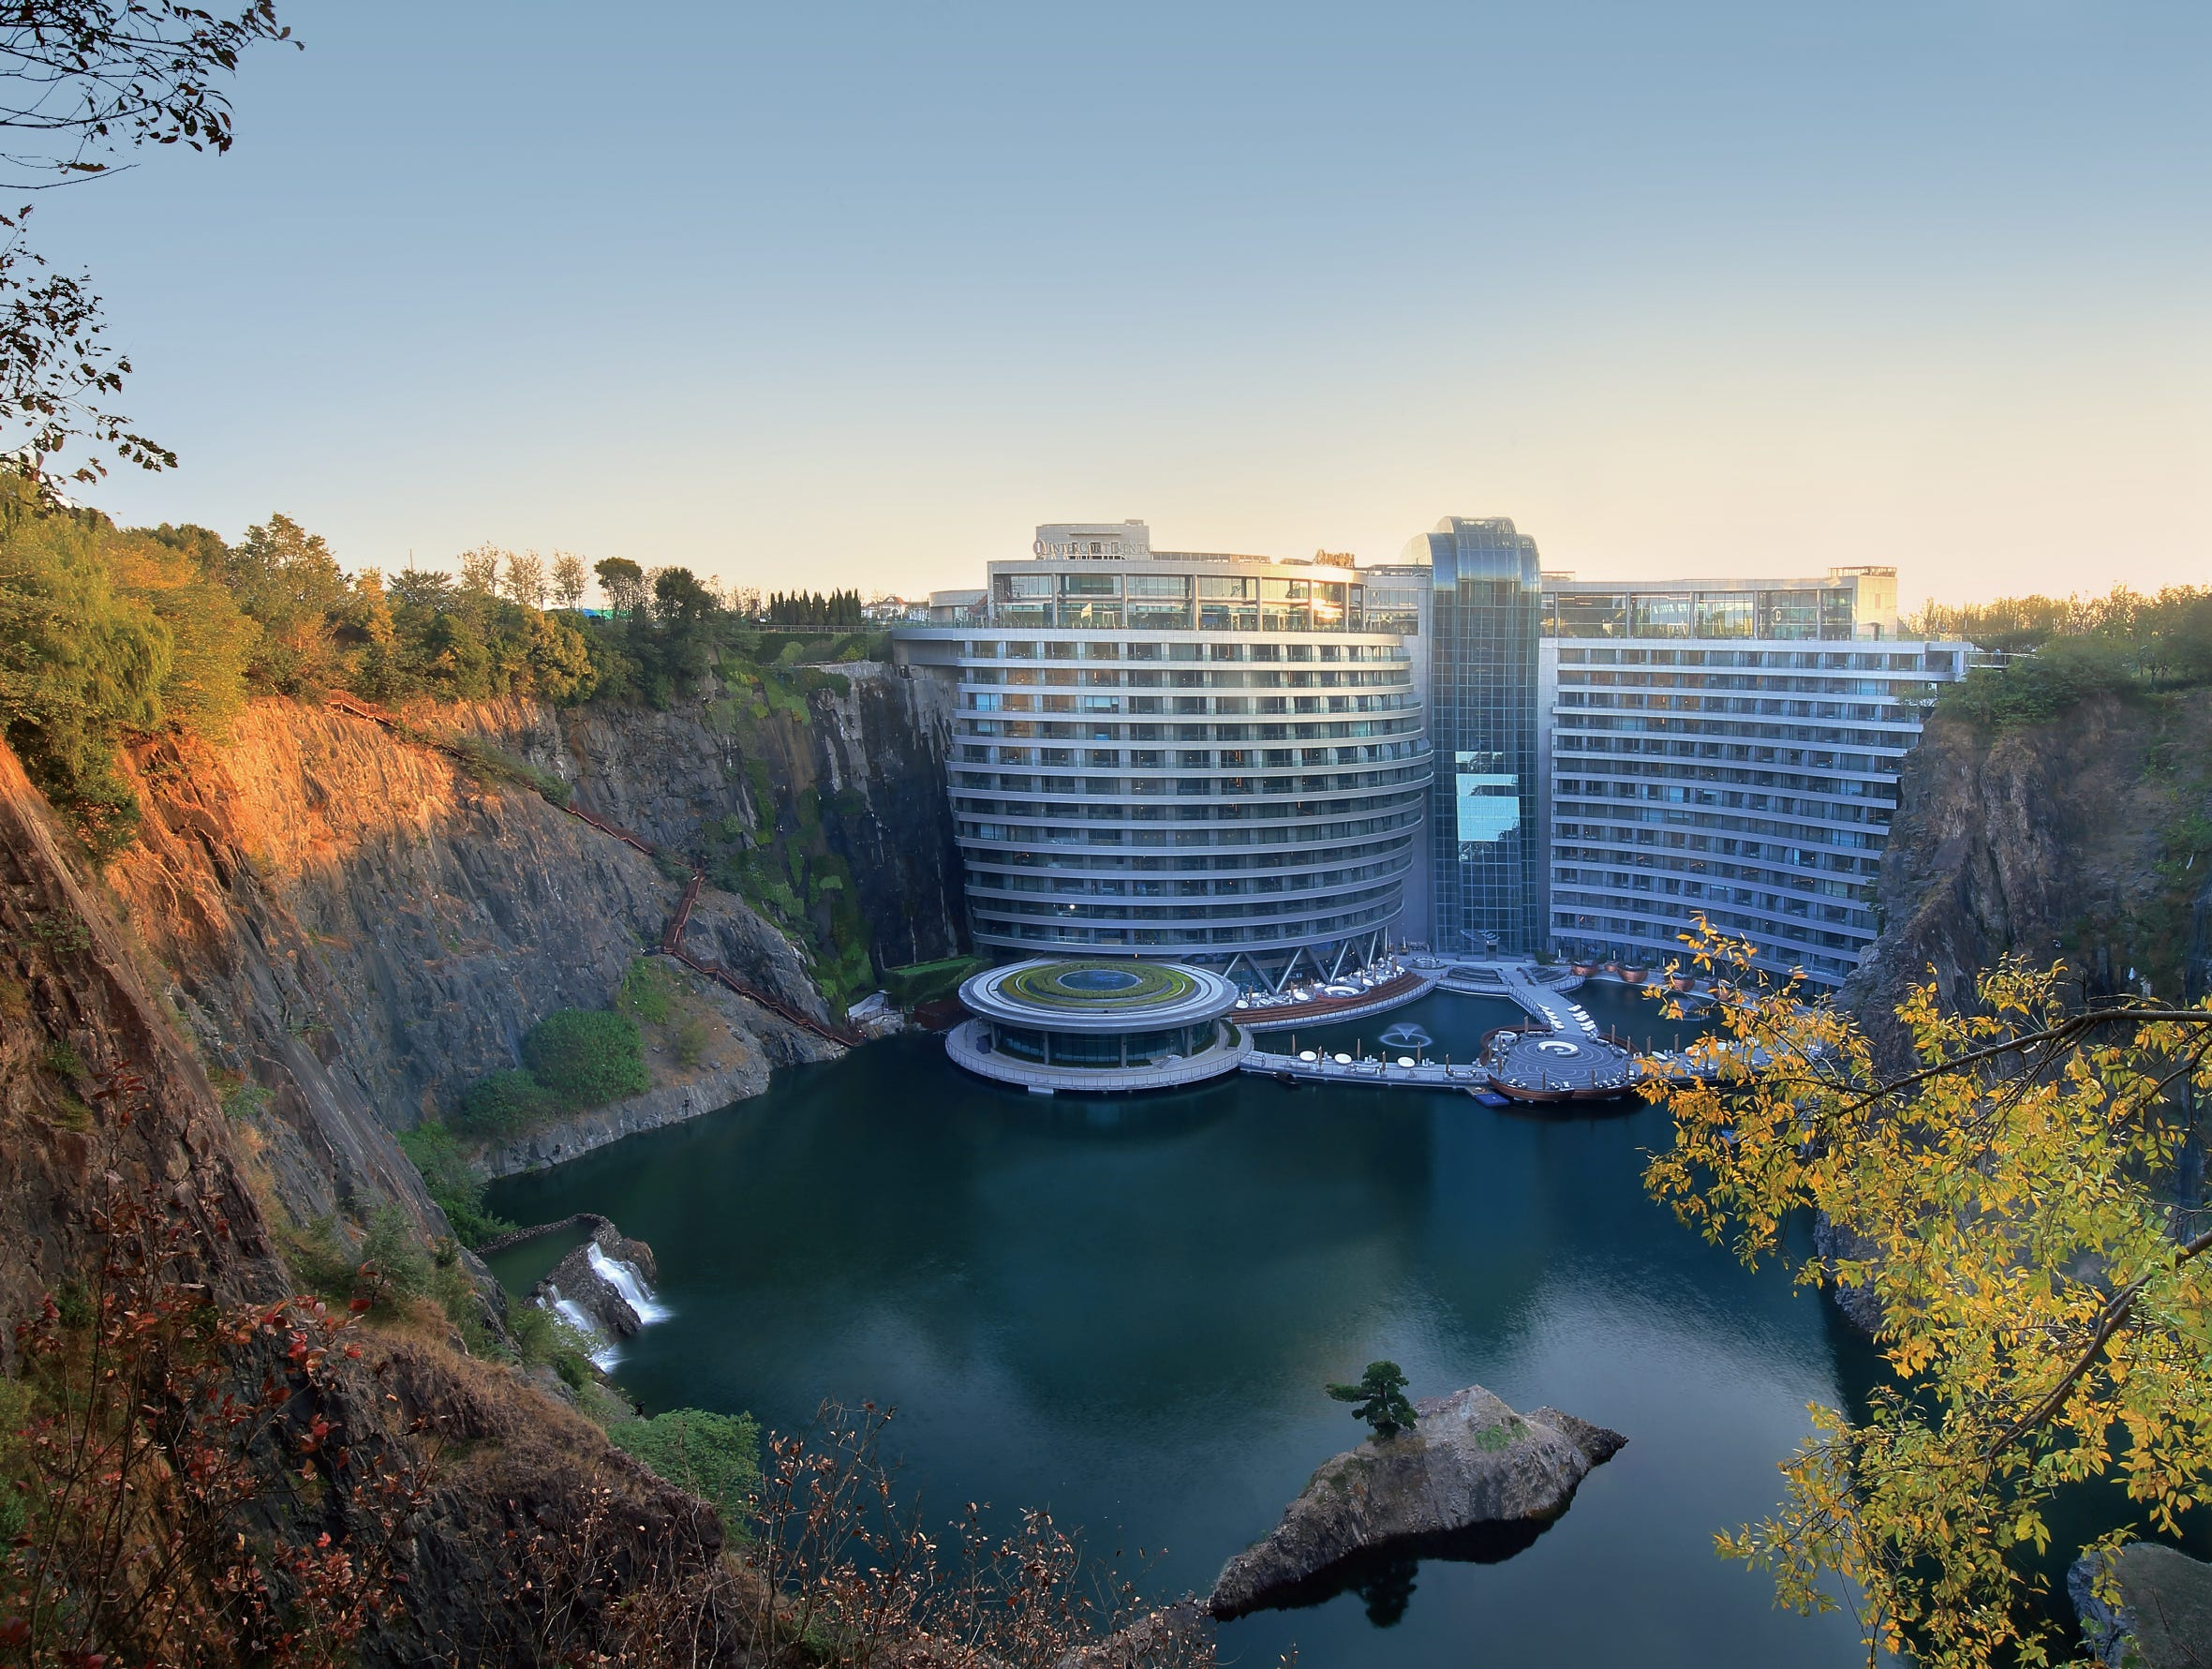 The location of the hotel was positioned to maximize exposure to the sun so that it could harvest solar (and water) energy to as much of the hotel operation as possible. It uses the quarry's own microclimate and unique thermal inertia to help cool the building in summer and warm it in winter. Winds from the north can easily cool the area. Nearly $300 million dollars went into the design and construction of this landmark project, which became an instant hit with Chinese visitors. The international guest list is expected to grow quickly.